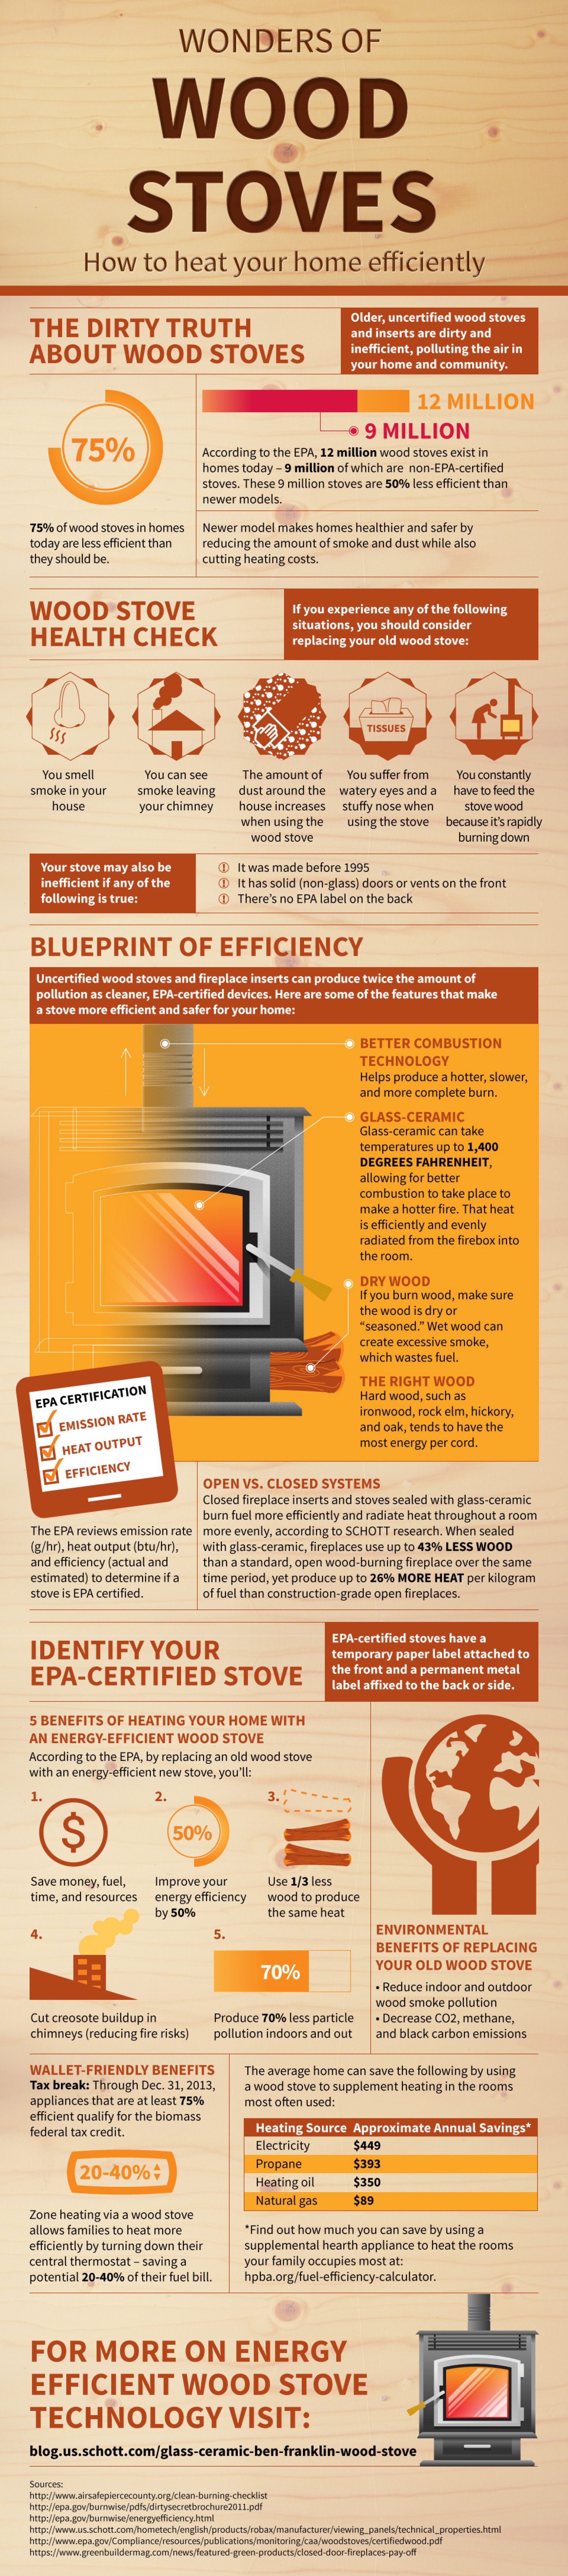 Wonders of  Wood Stoves Infographic